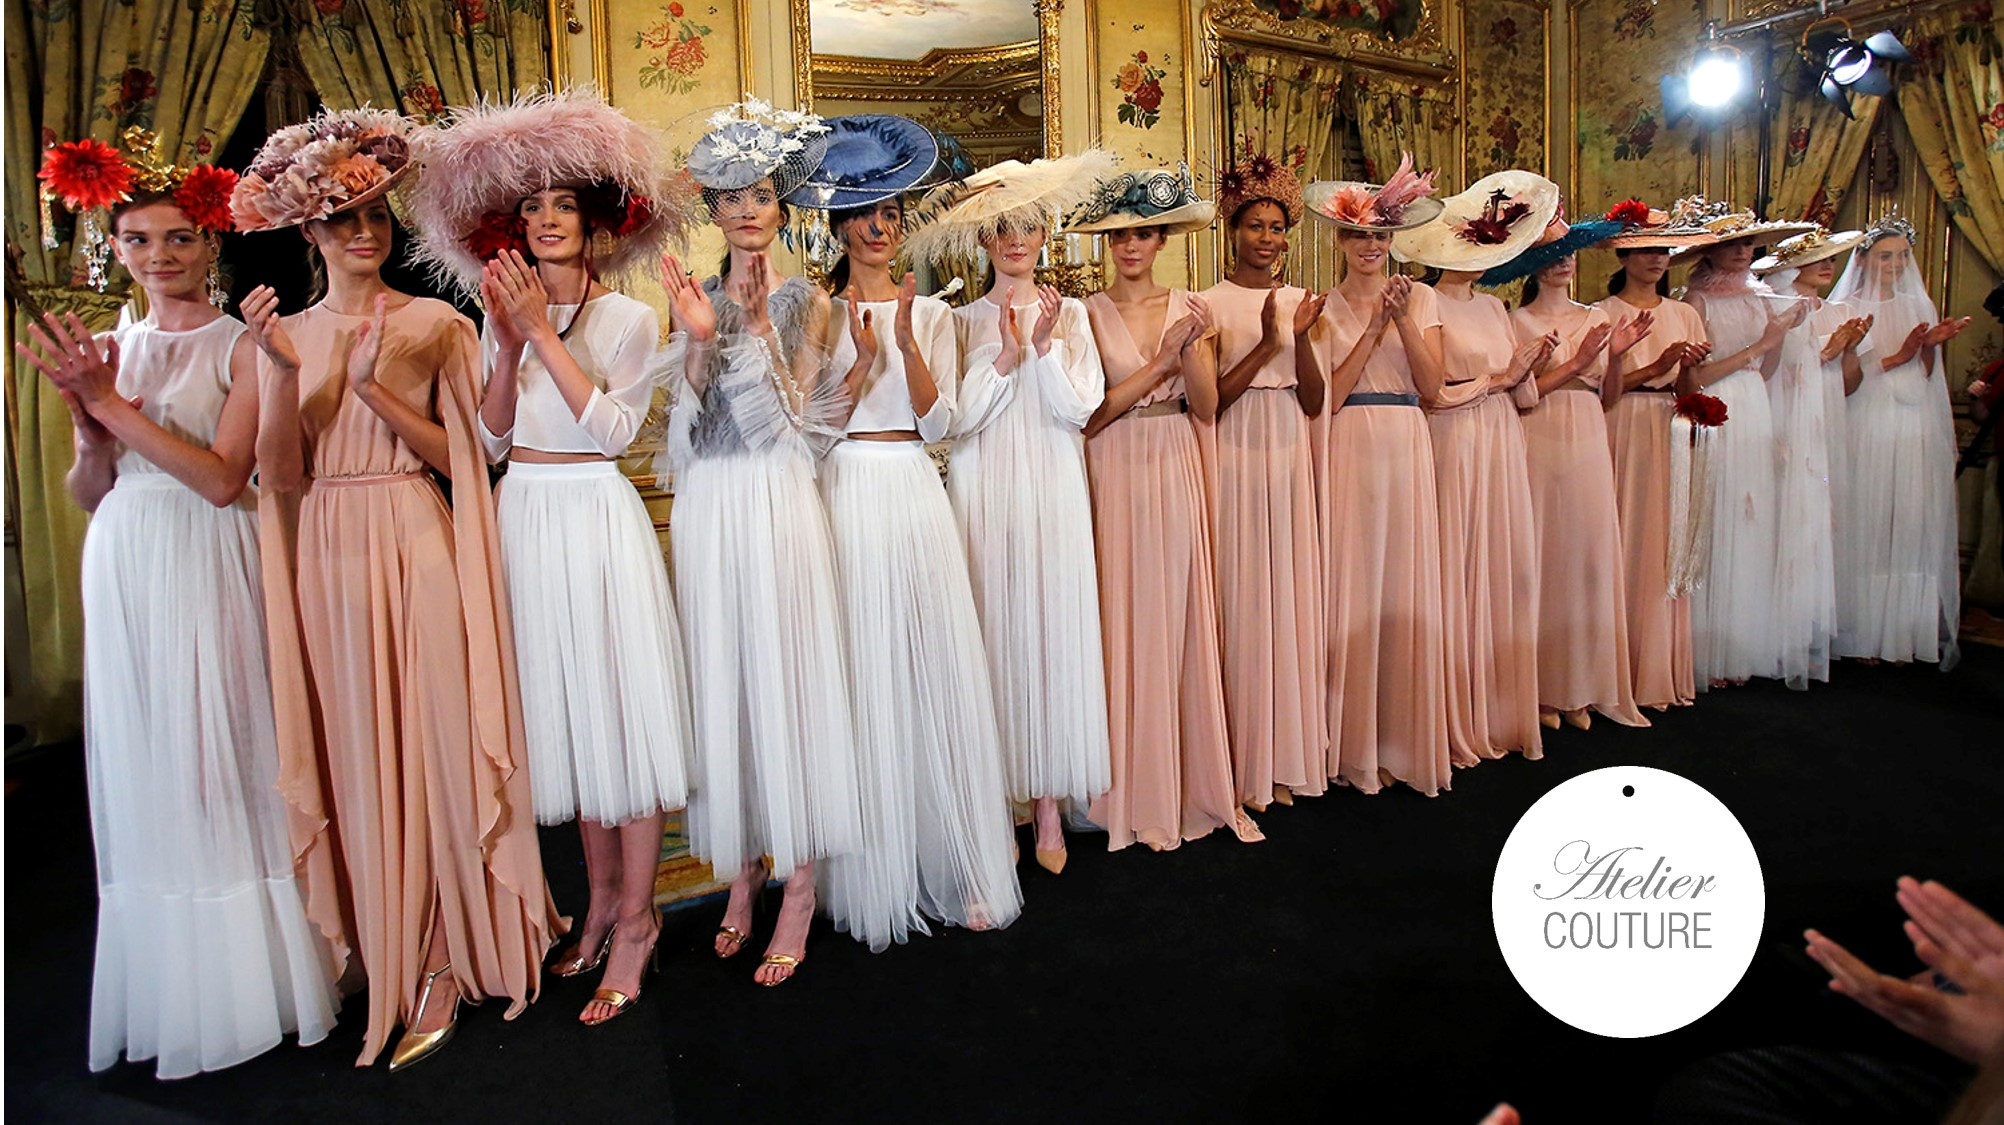 Atelier Couture (By Loleiro)